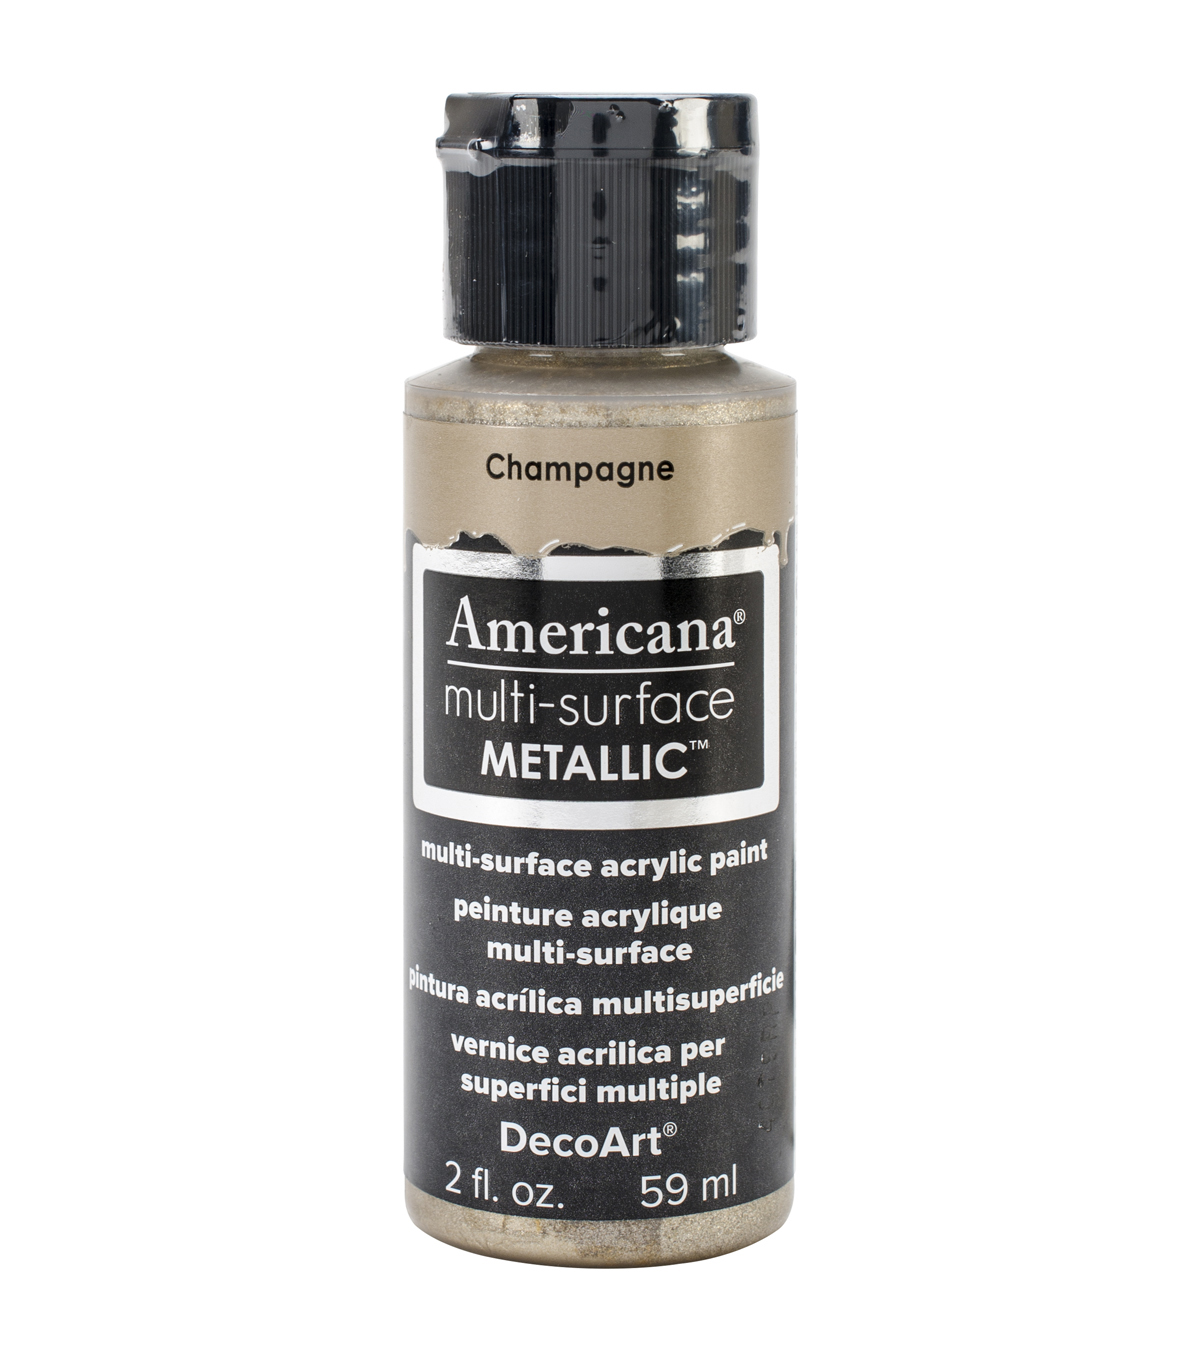 DecoArt Americana Multi-Surface Satin Acrylic Paint-Champagne